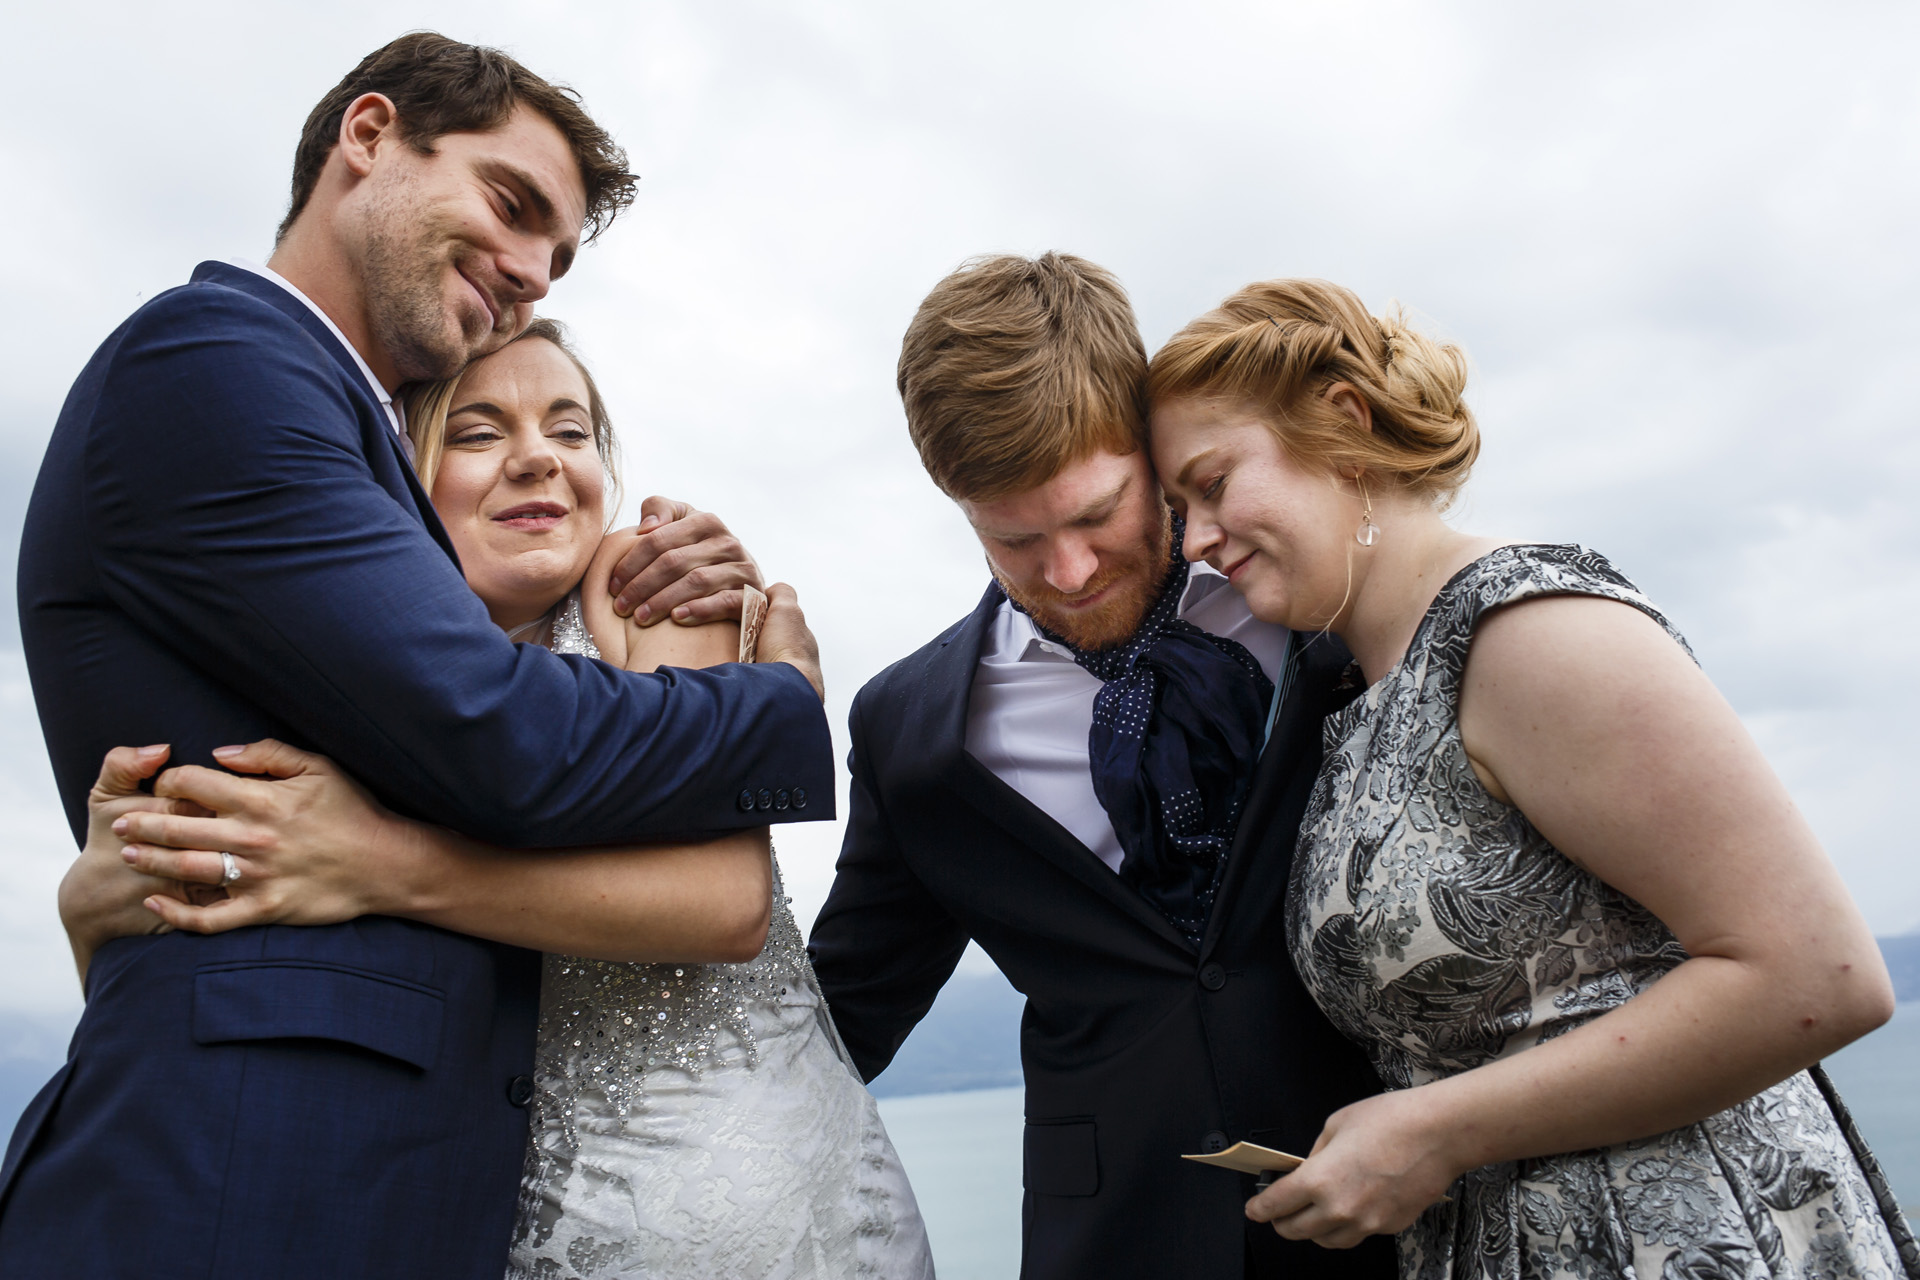 Geneva Lake, Lausanne Elopement Picture | At the end of the speeches all relatives gave big hugs to the couple